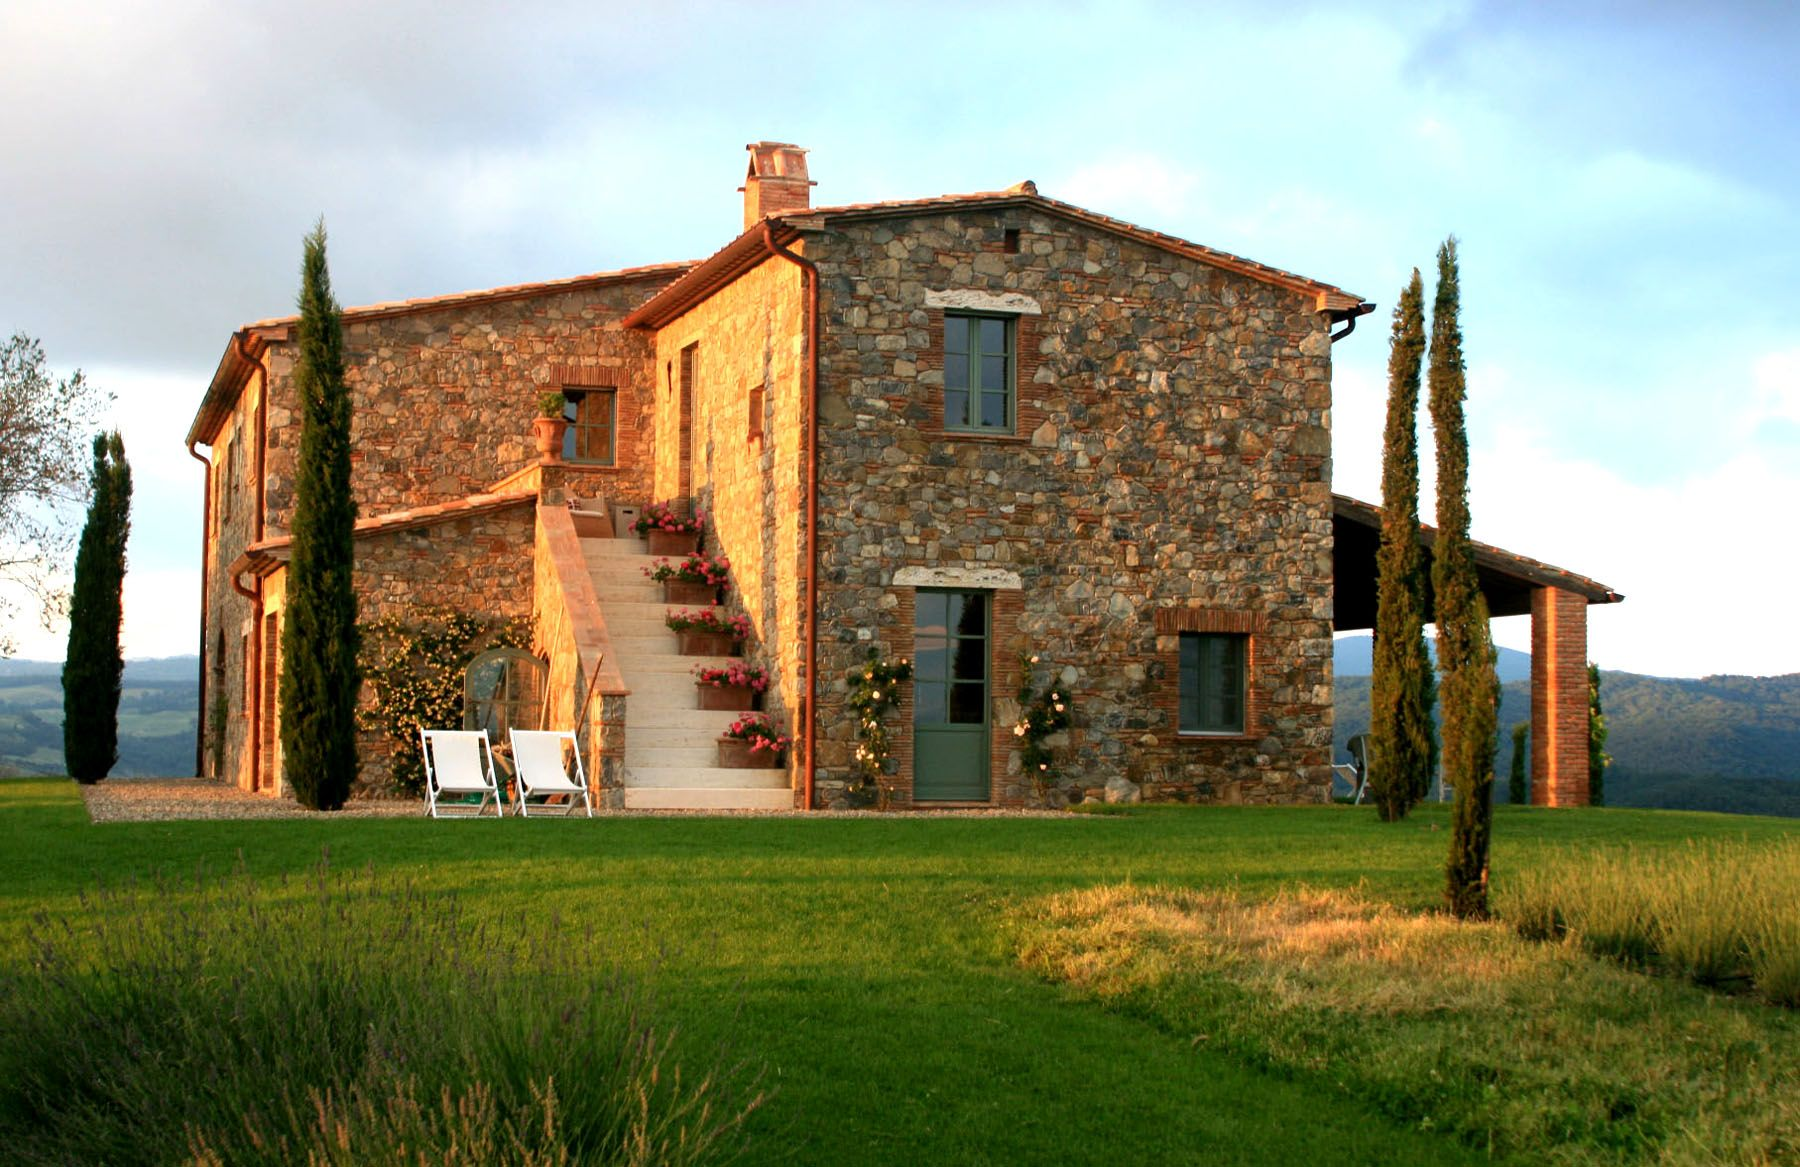 20 gorgeous homes in tuscany italy joinery foundation for Tuscany style homes